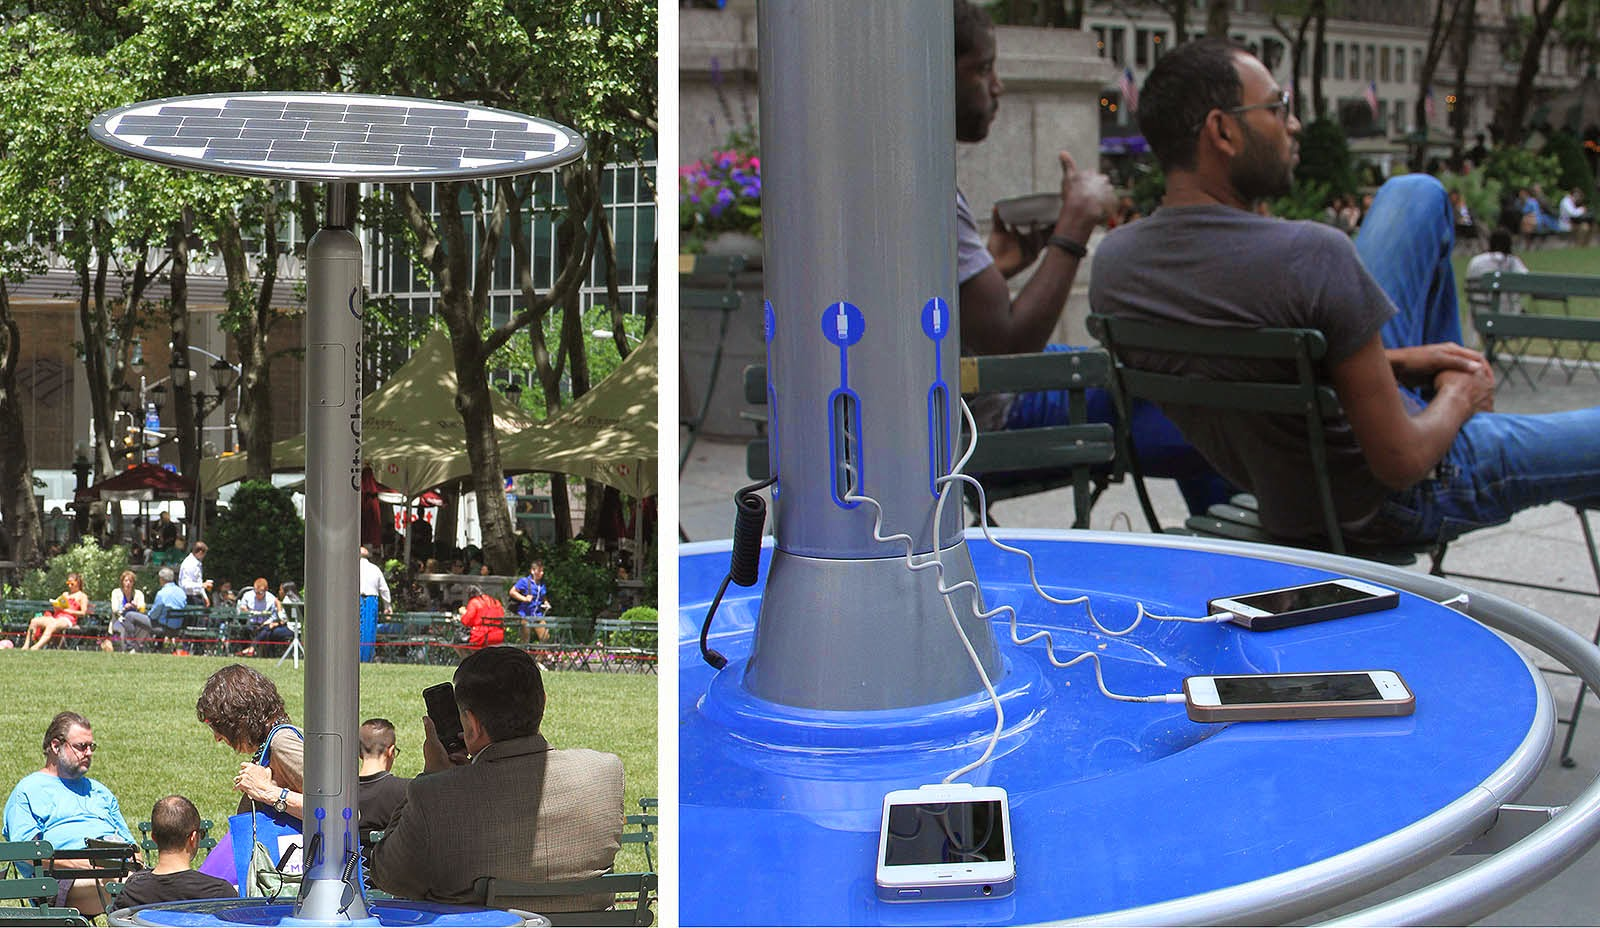 Bryant Park in New York City Begins Testing Solar-Powered Smartphone  Charging Stations